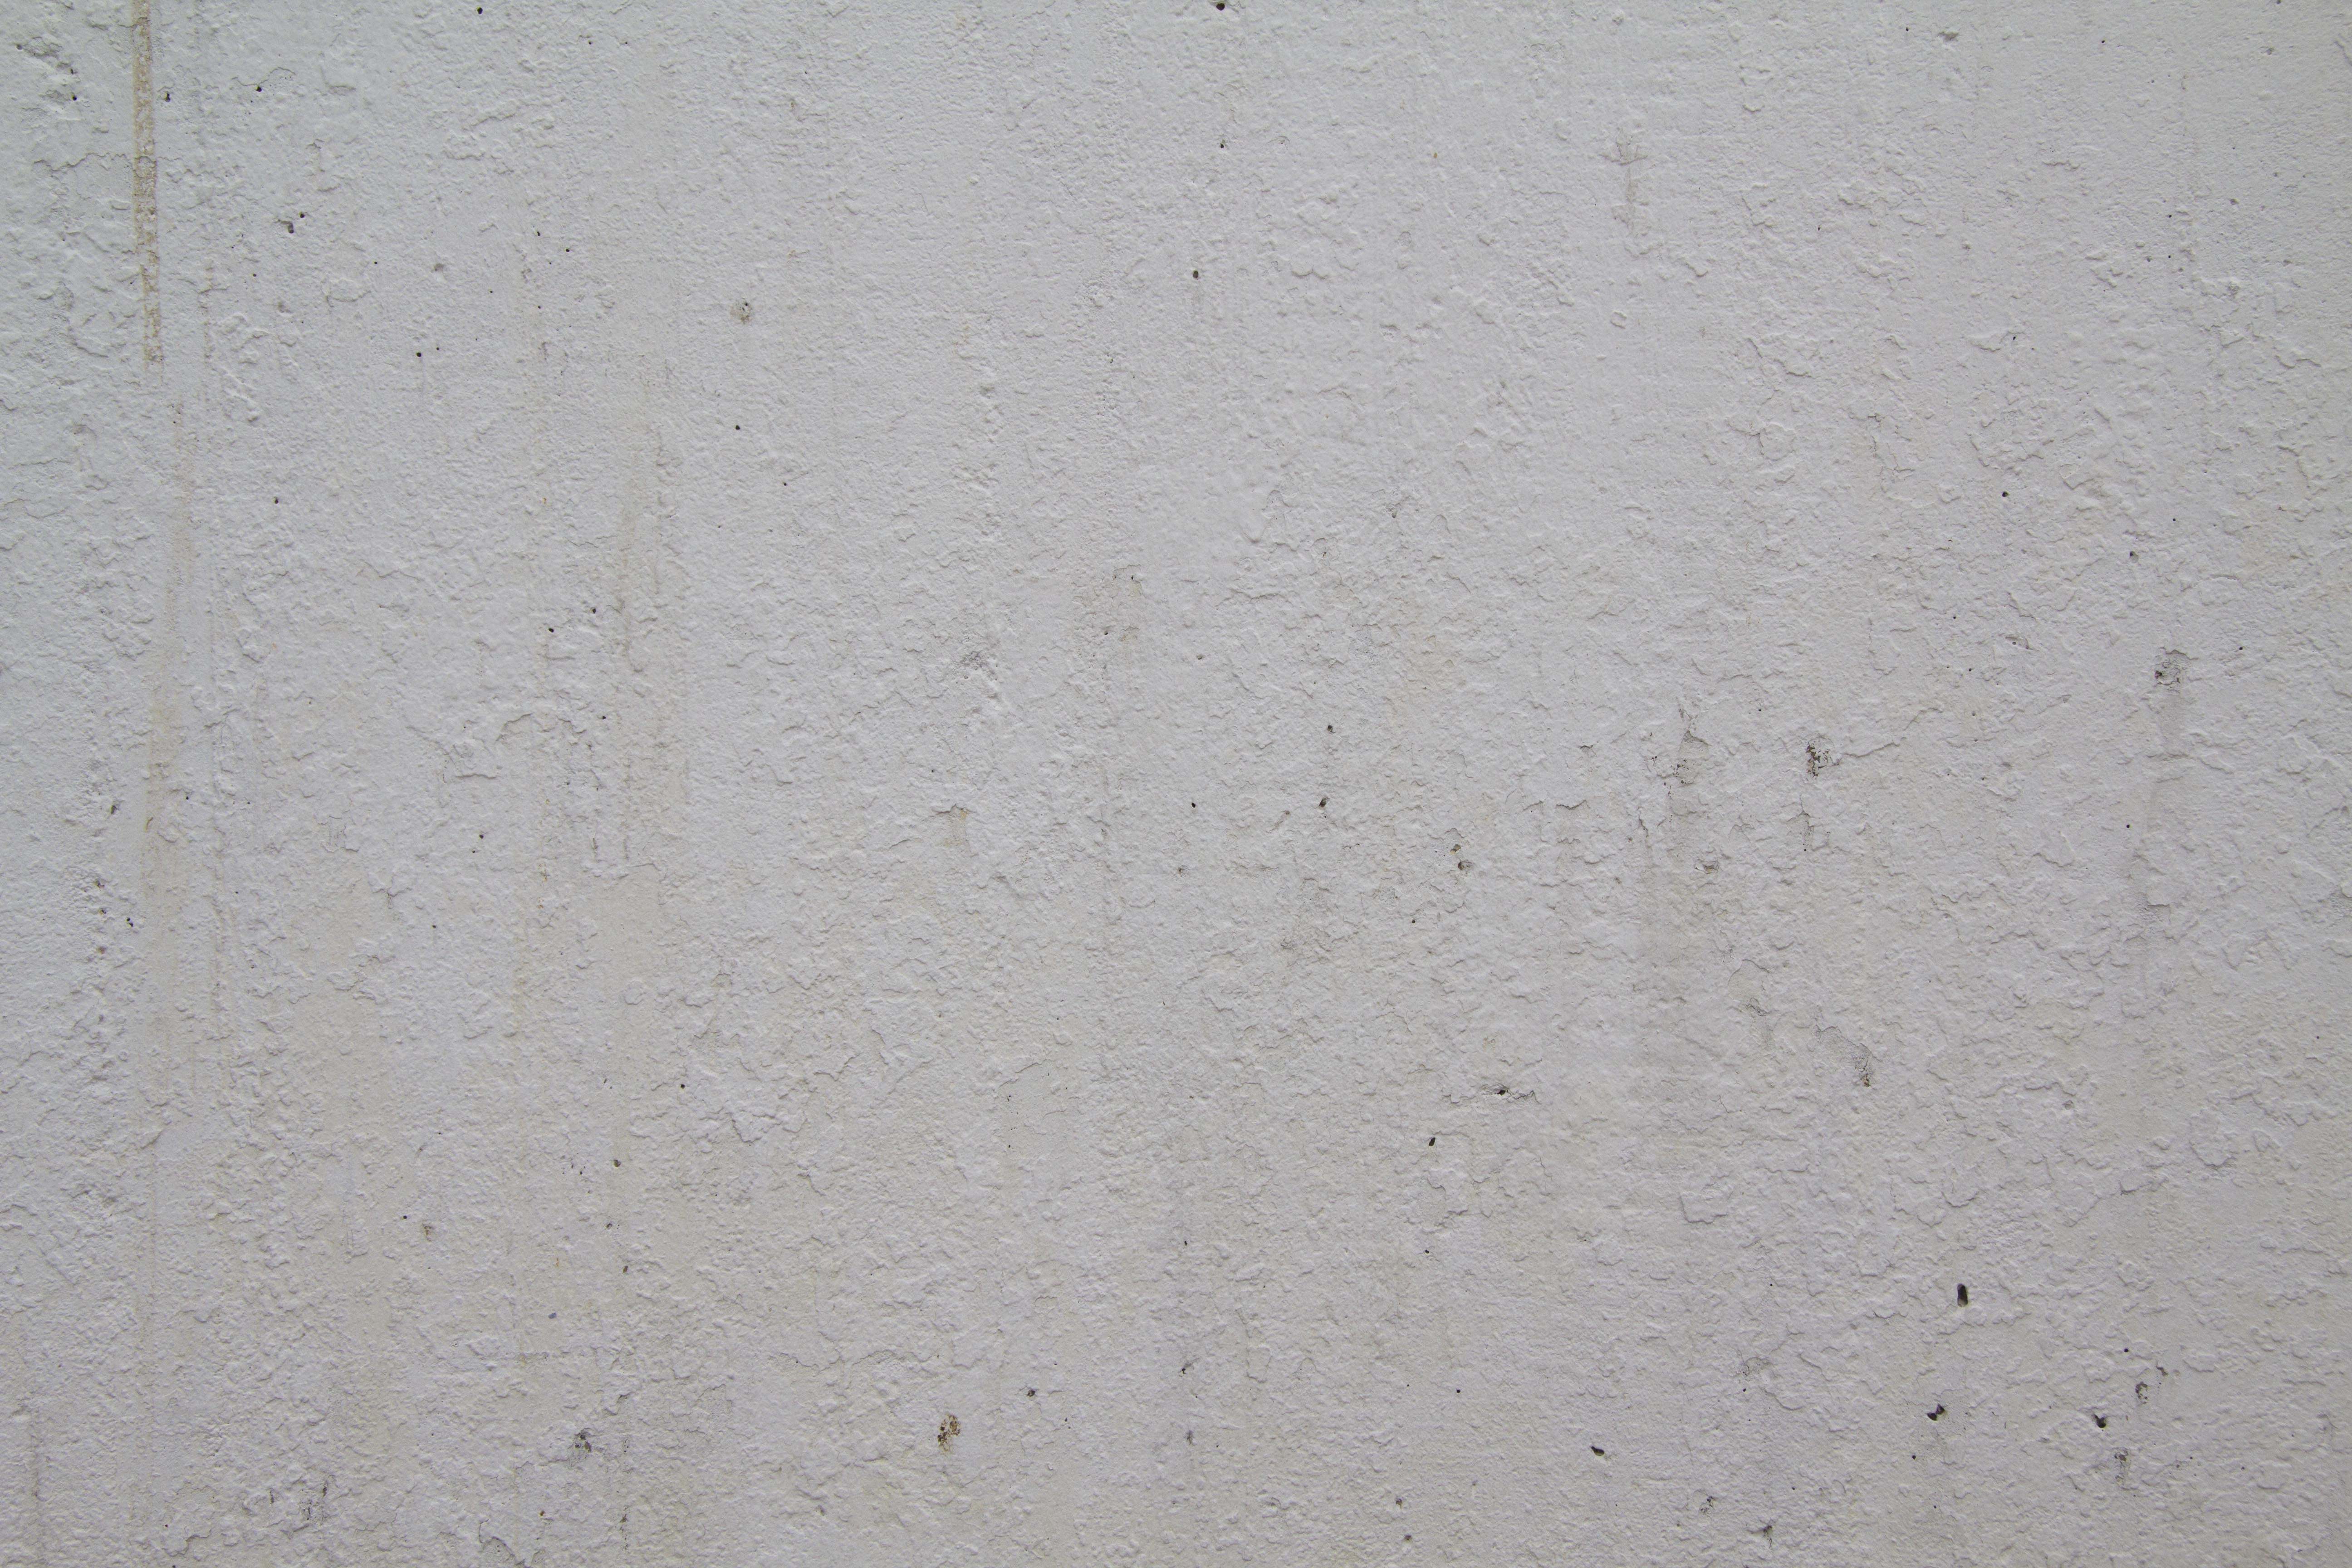 White Plaster Texture « Lovelystock Textures - Free, High Quality ...